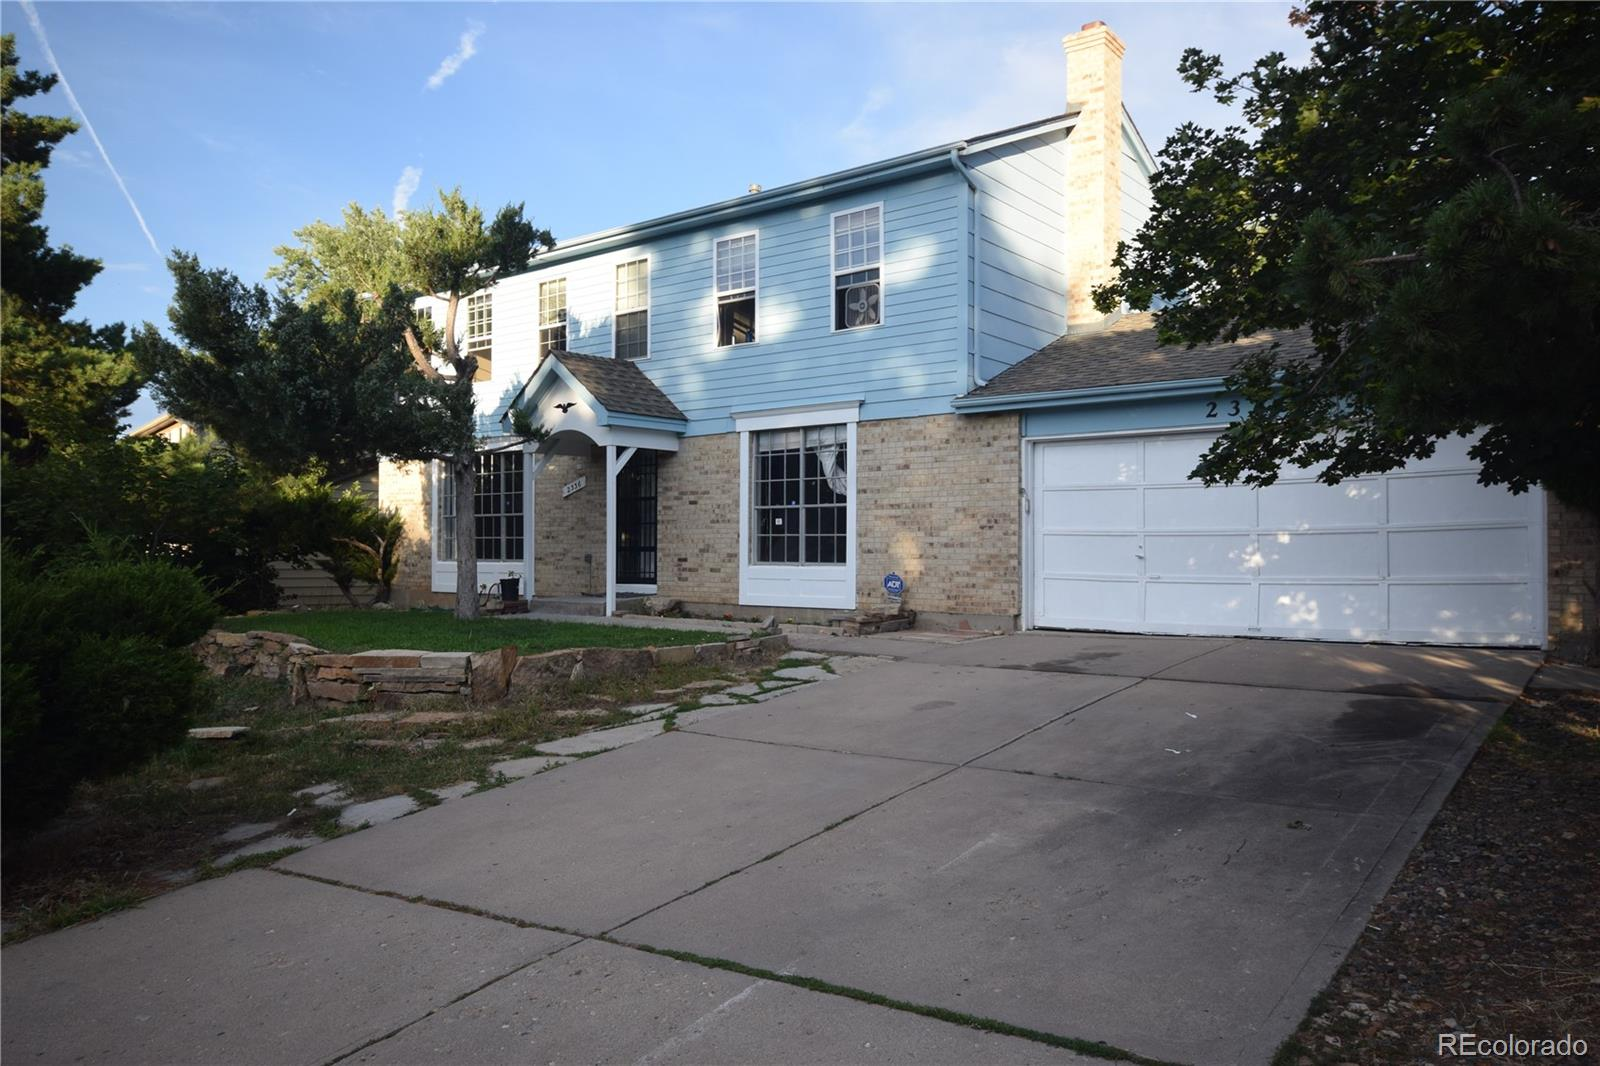 Large home,sun room,2 car garage,fenced yard.large den and living room.quick close.